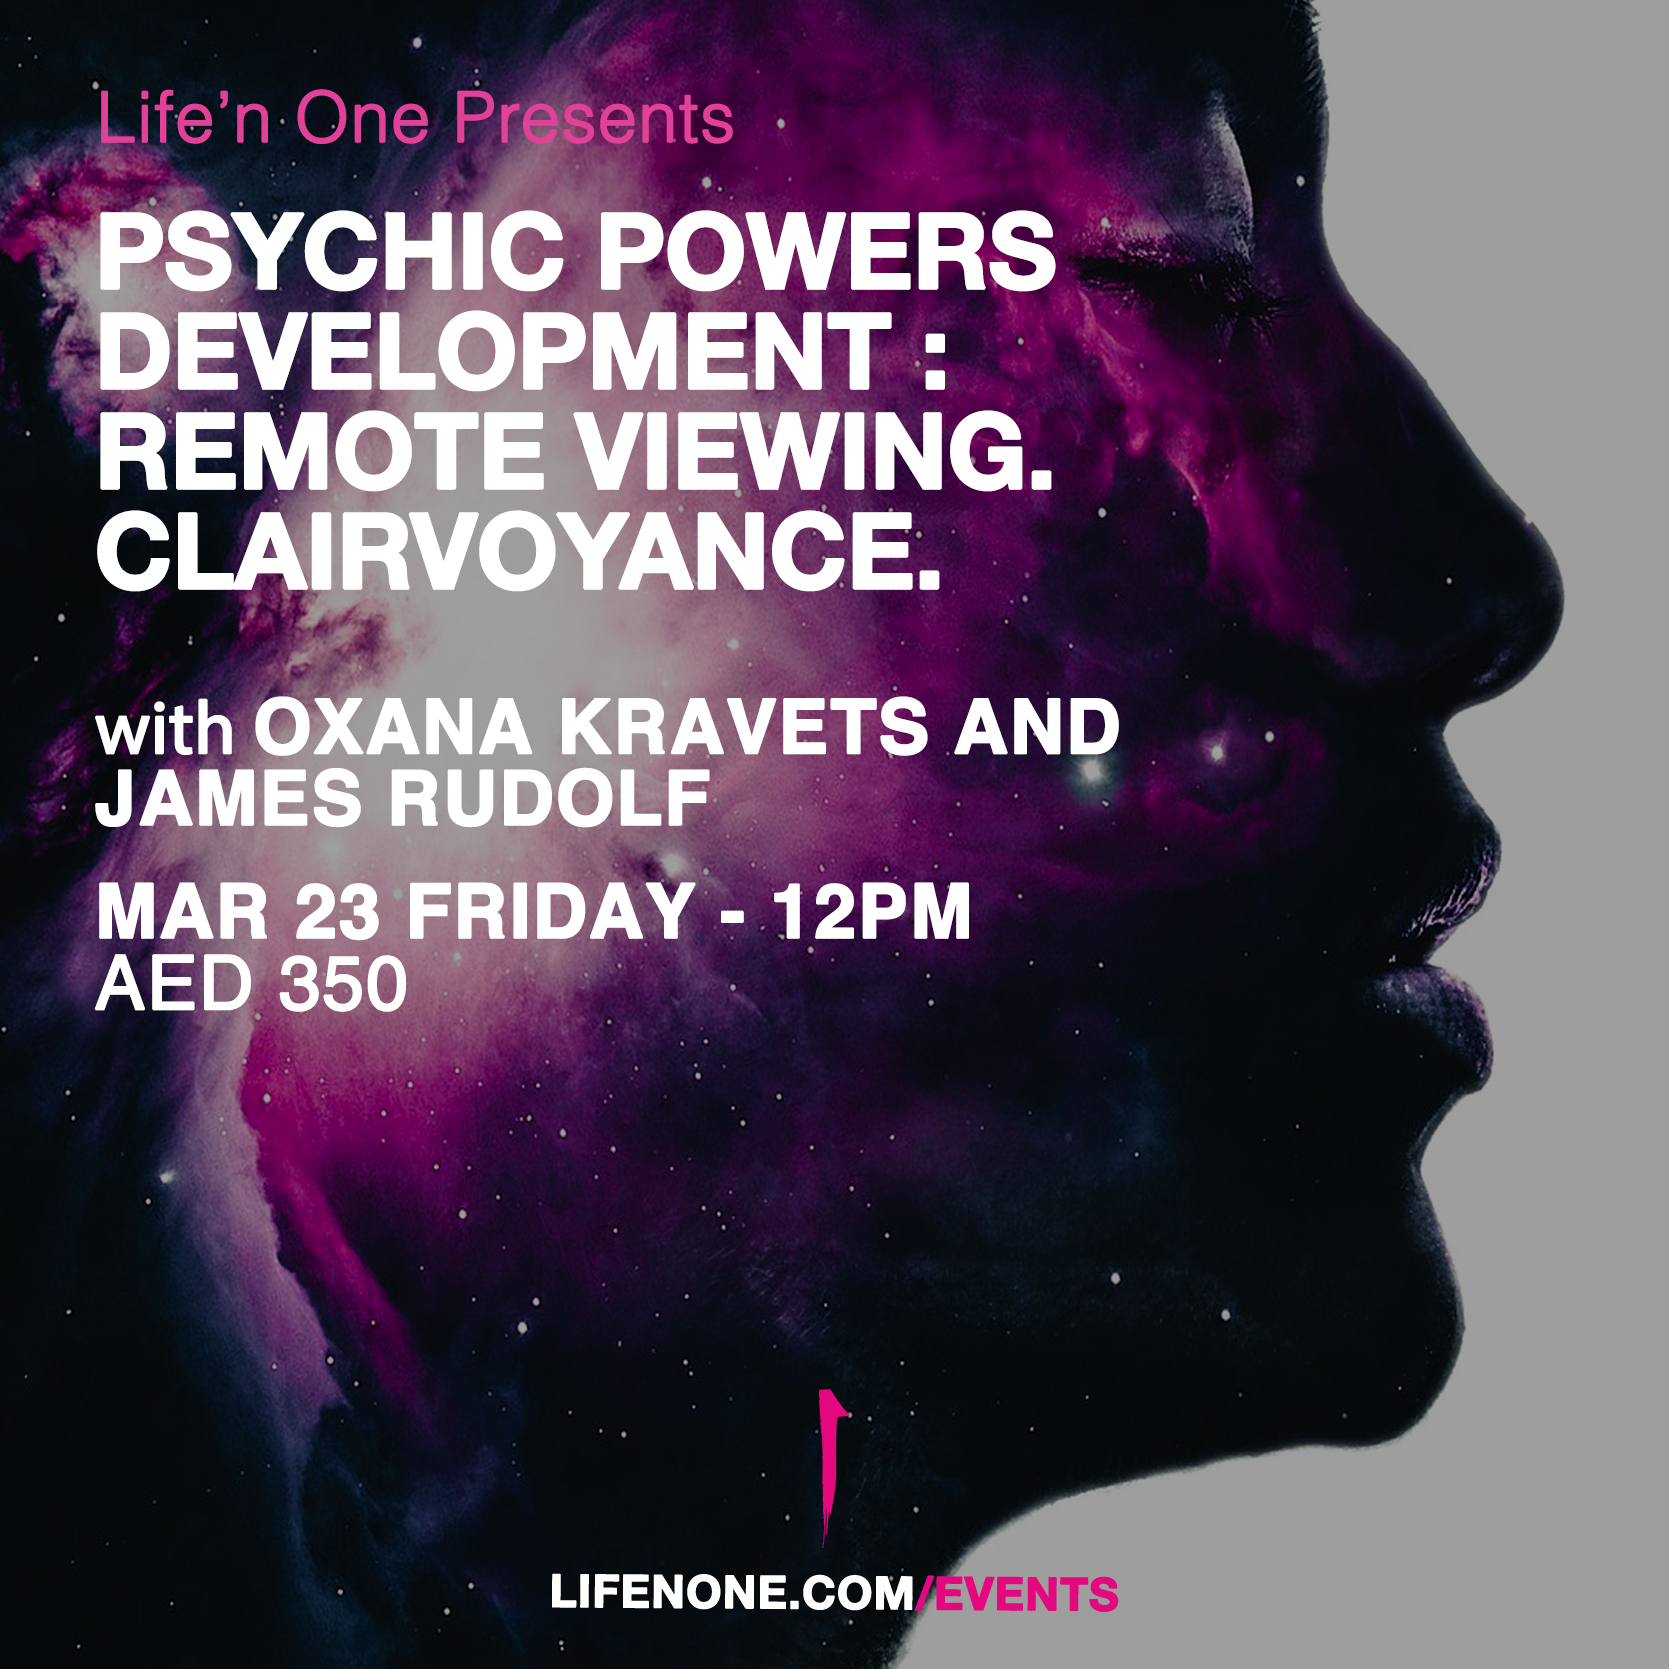 Psychic Powers Development: Remote Viewing. Clairvoyance with Oxana Kravets and James Rudolf